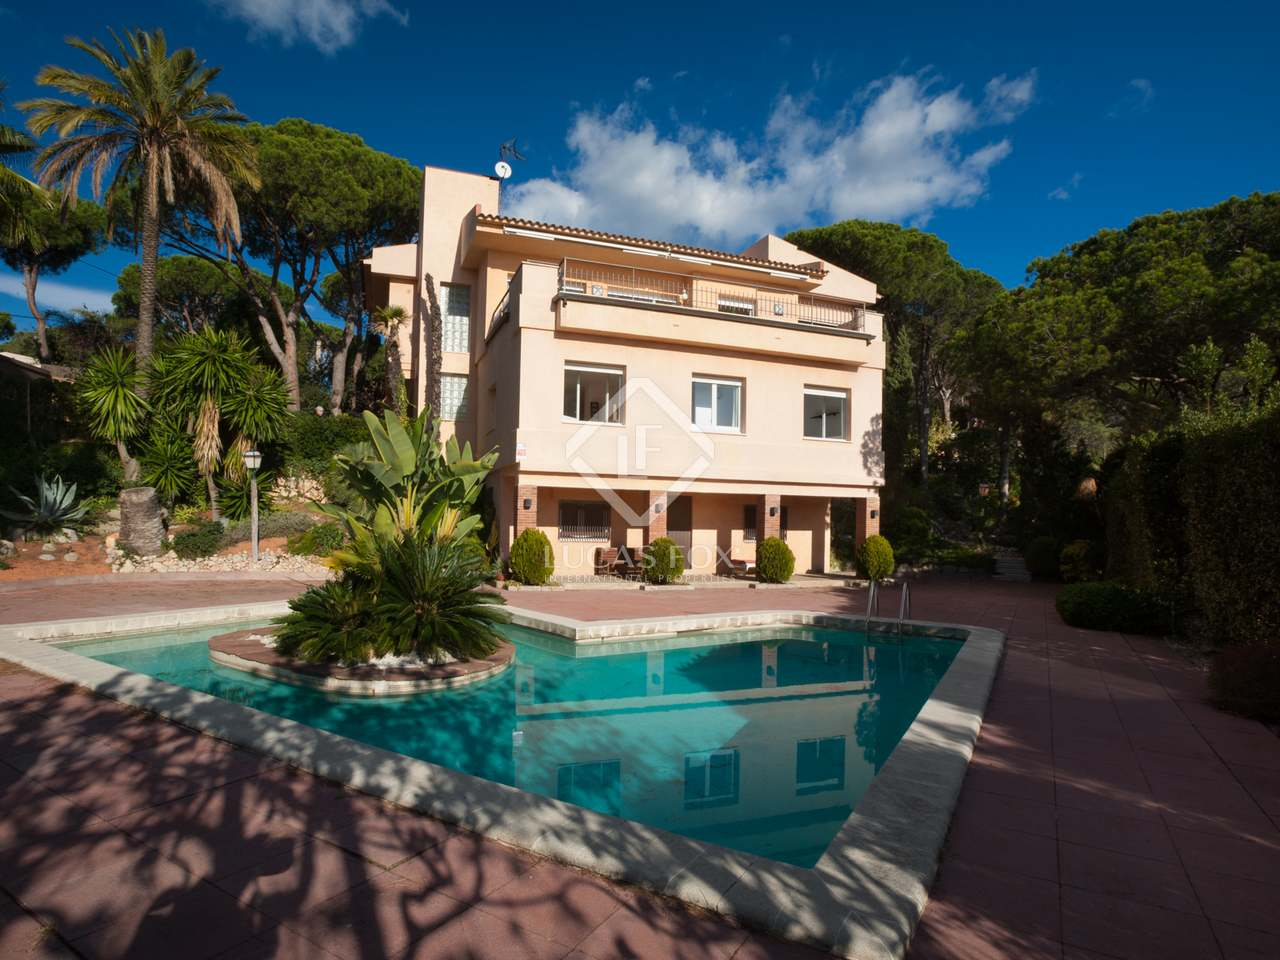 5 Bedroom Villa With Pool For Sale In Cabrils